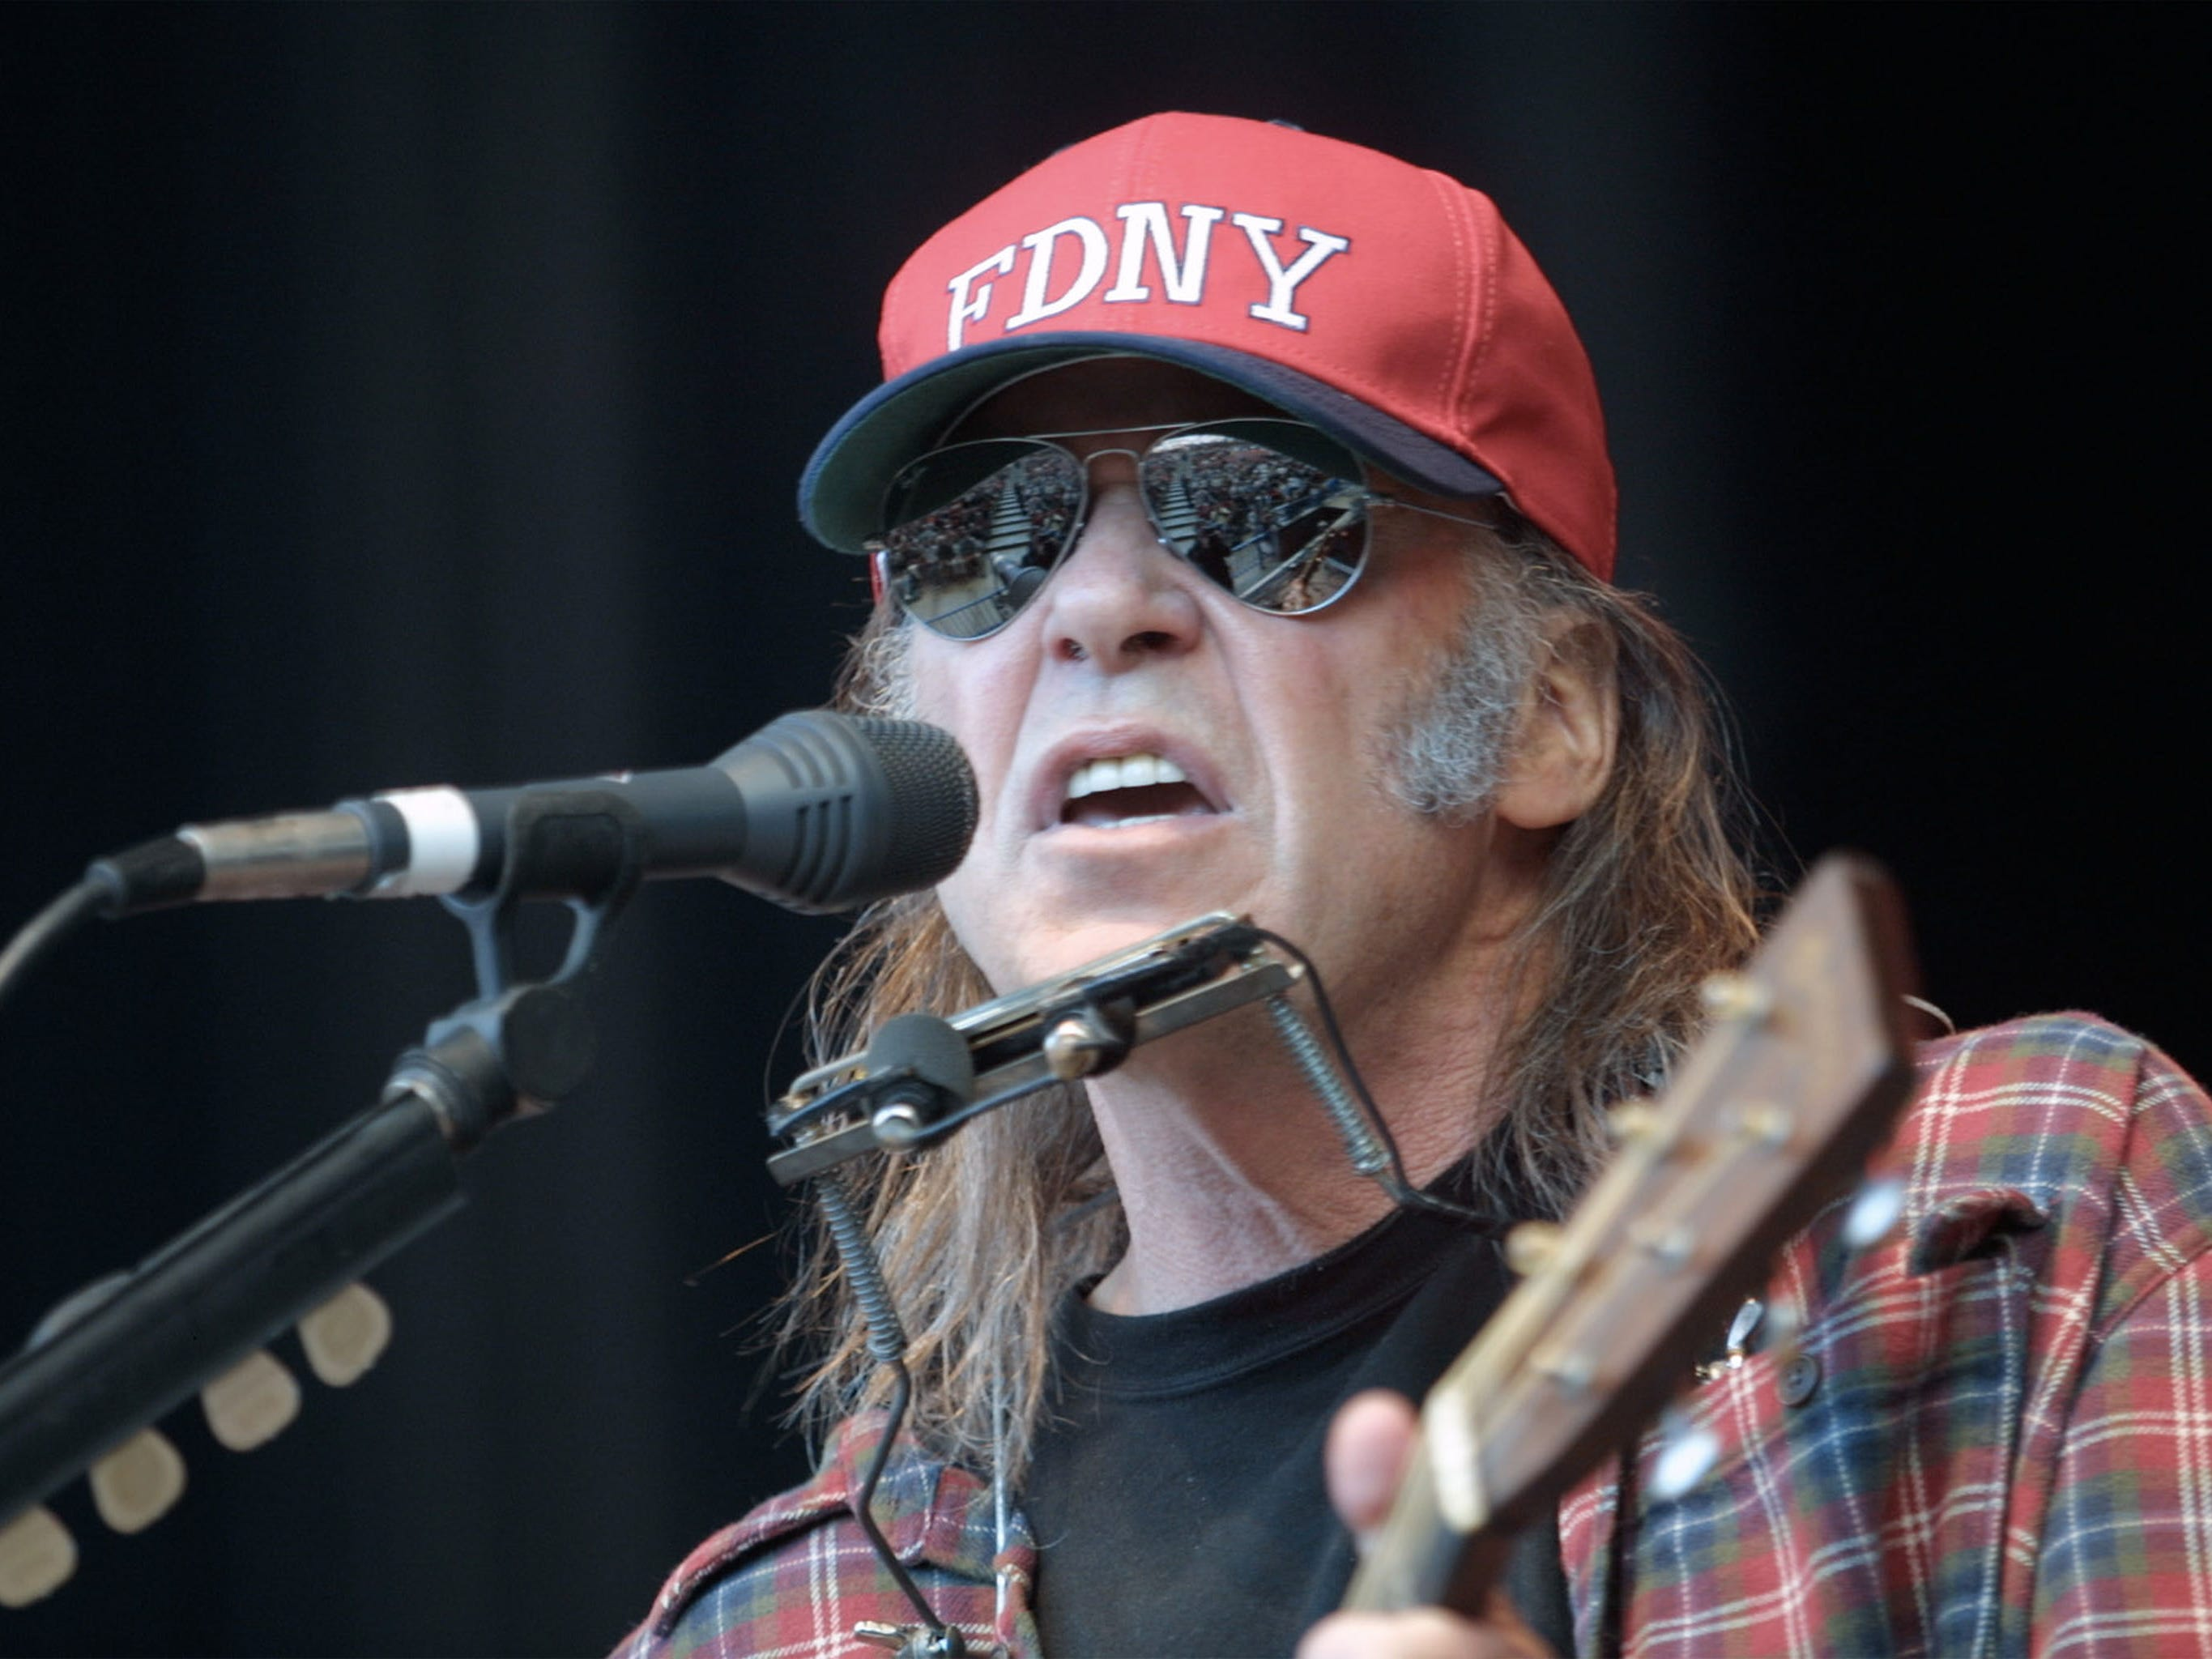 Neil Young sings during the 15th Annual Bridge School Benefit at the Shoreline Amphitheatre October 21, 2001 in Mountain View, California.